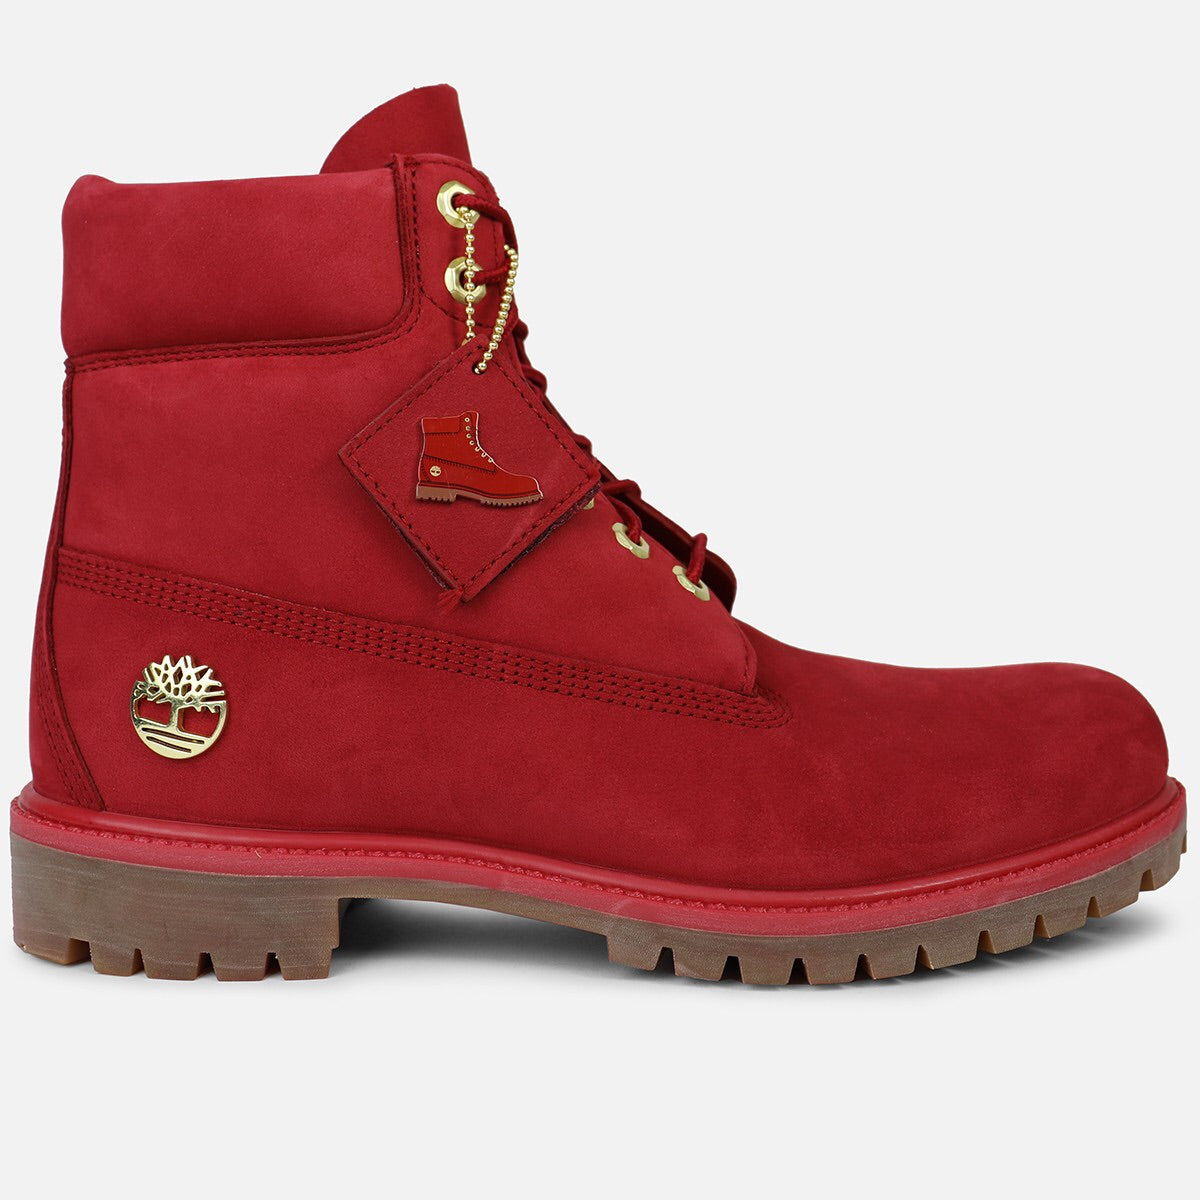 8a407a2b9b9 Timberland 6-Inch Premium Boot Fire (Ruby Red)